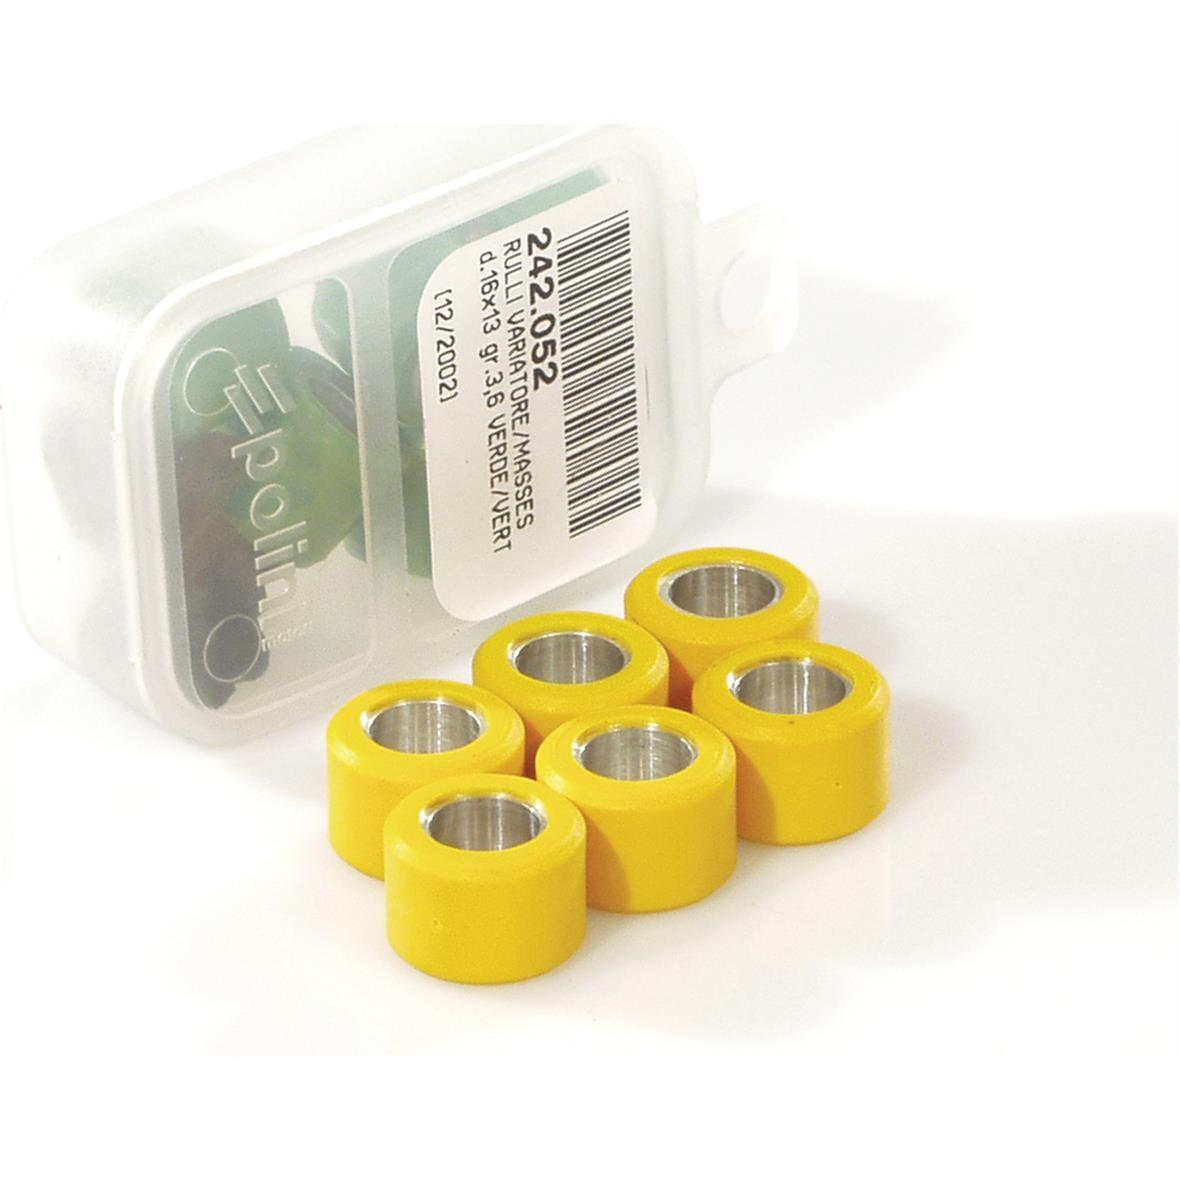 Product Image for 'Variator Rollers POLINI 20x17 mm 13,2gTitle'